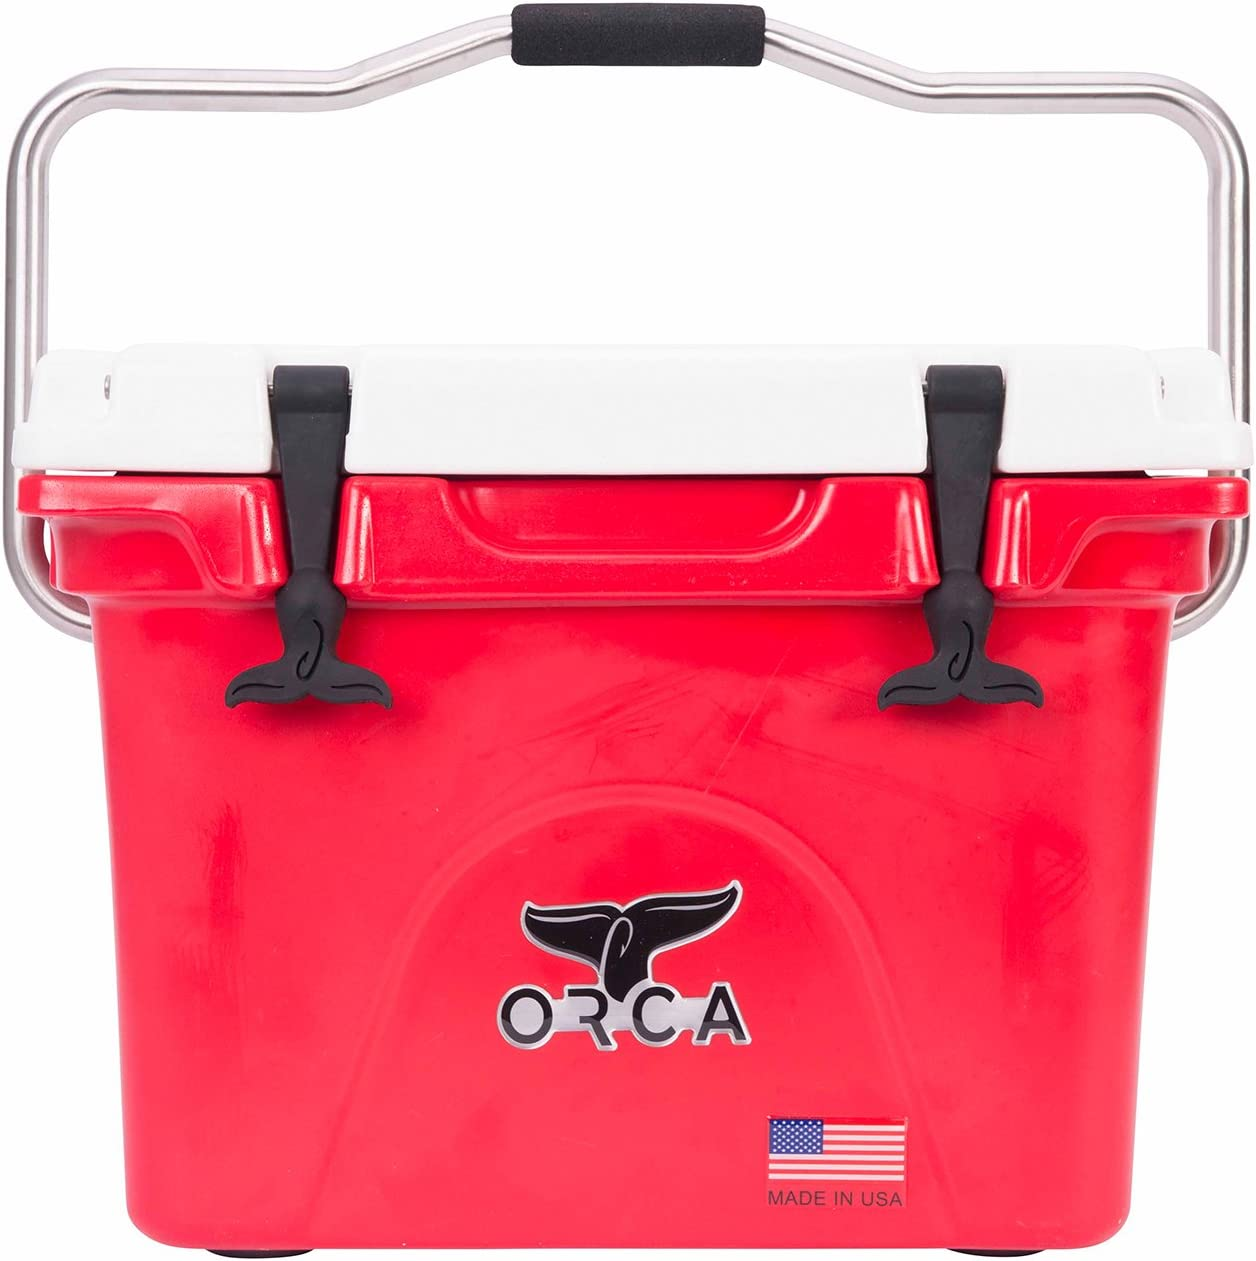 ORCA 20 QT SOLID RED COOLER WITH LIFETIME WARRANTY